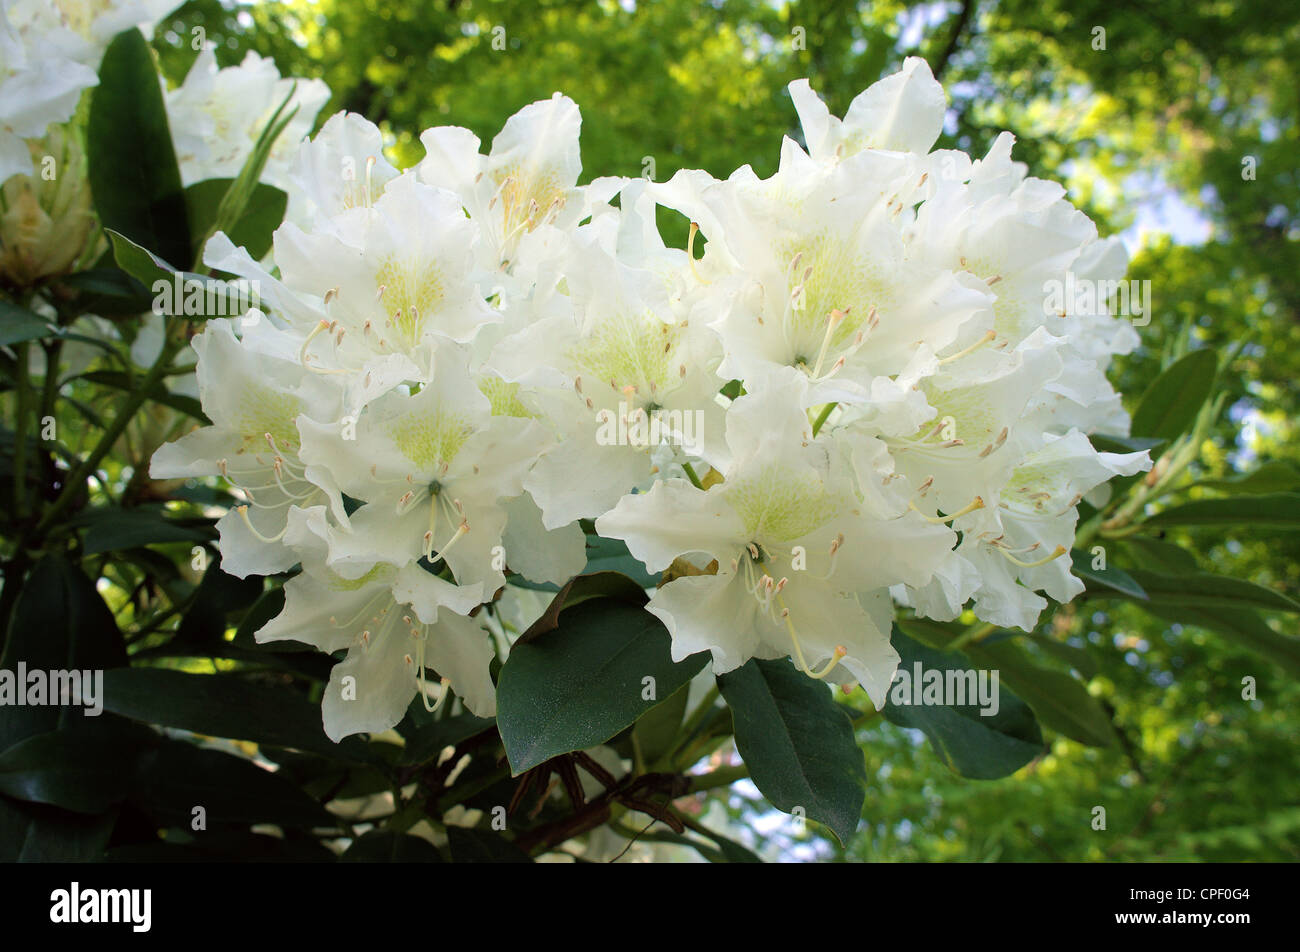 White Rhododendron rich abundant blossom - Stock Image